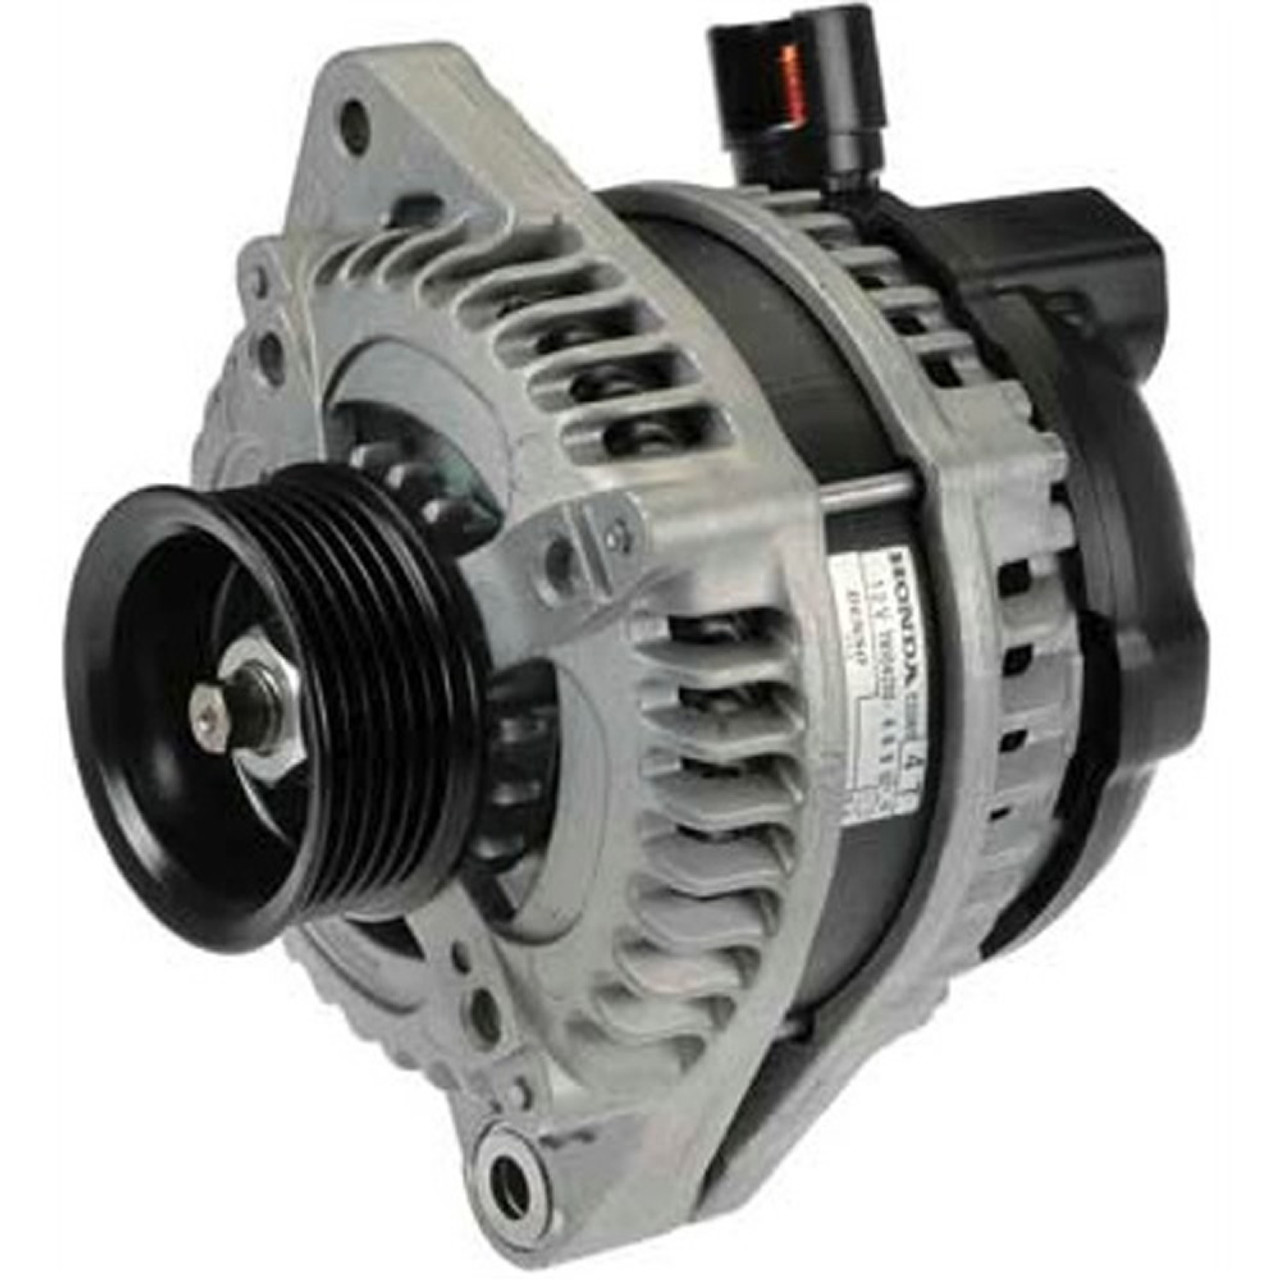 Acura MDX Alternator 3.5L 2007-2008 MAS Alternator 11151